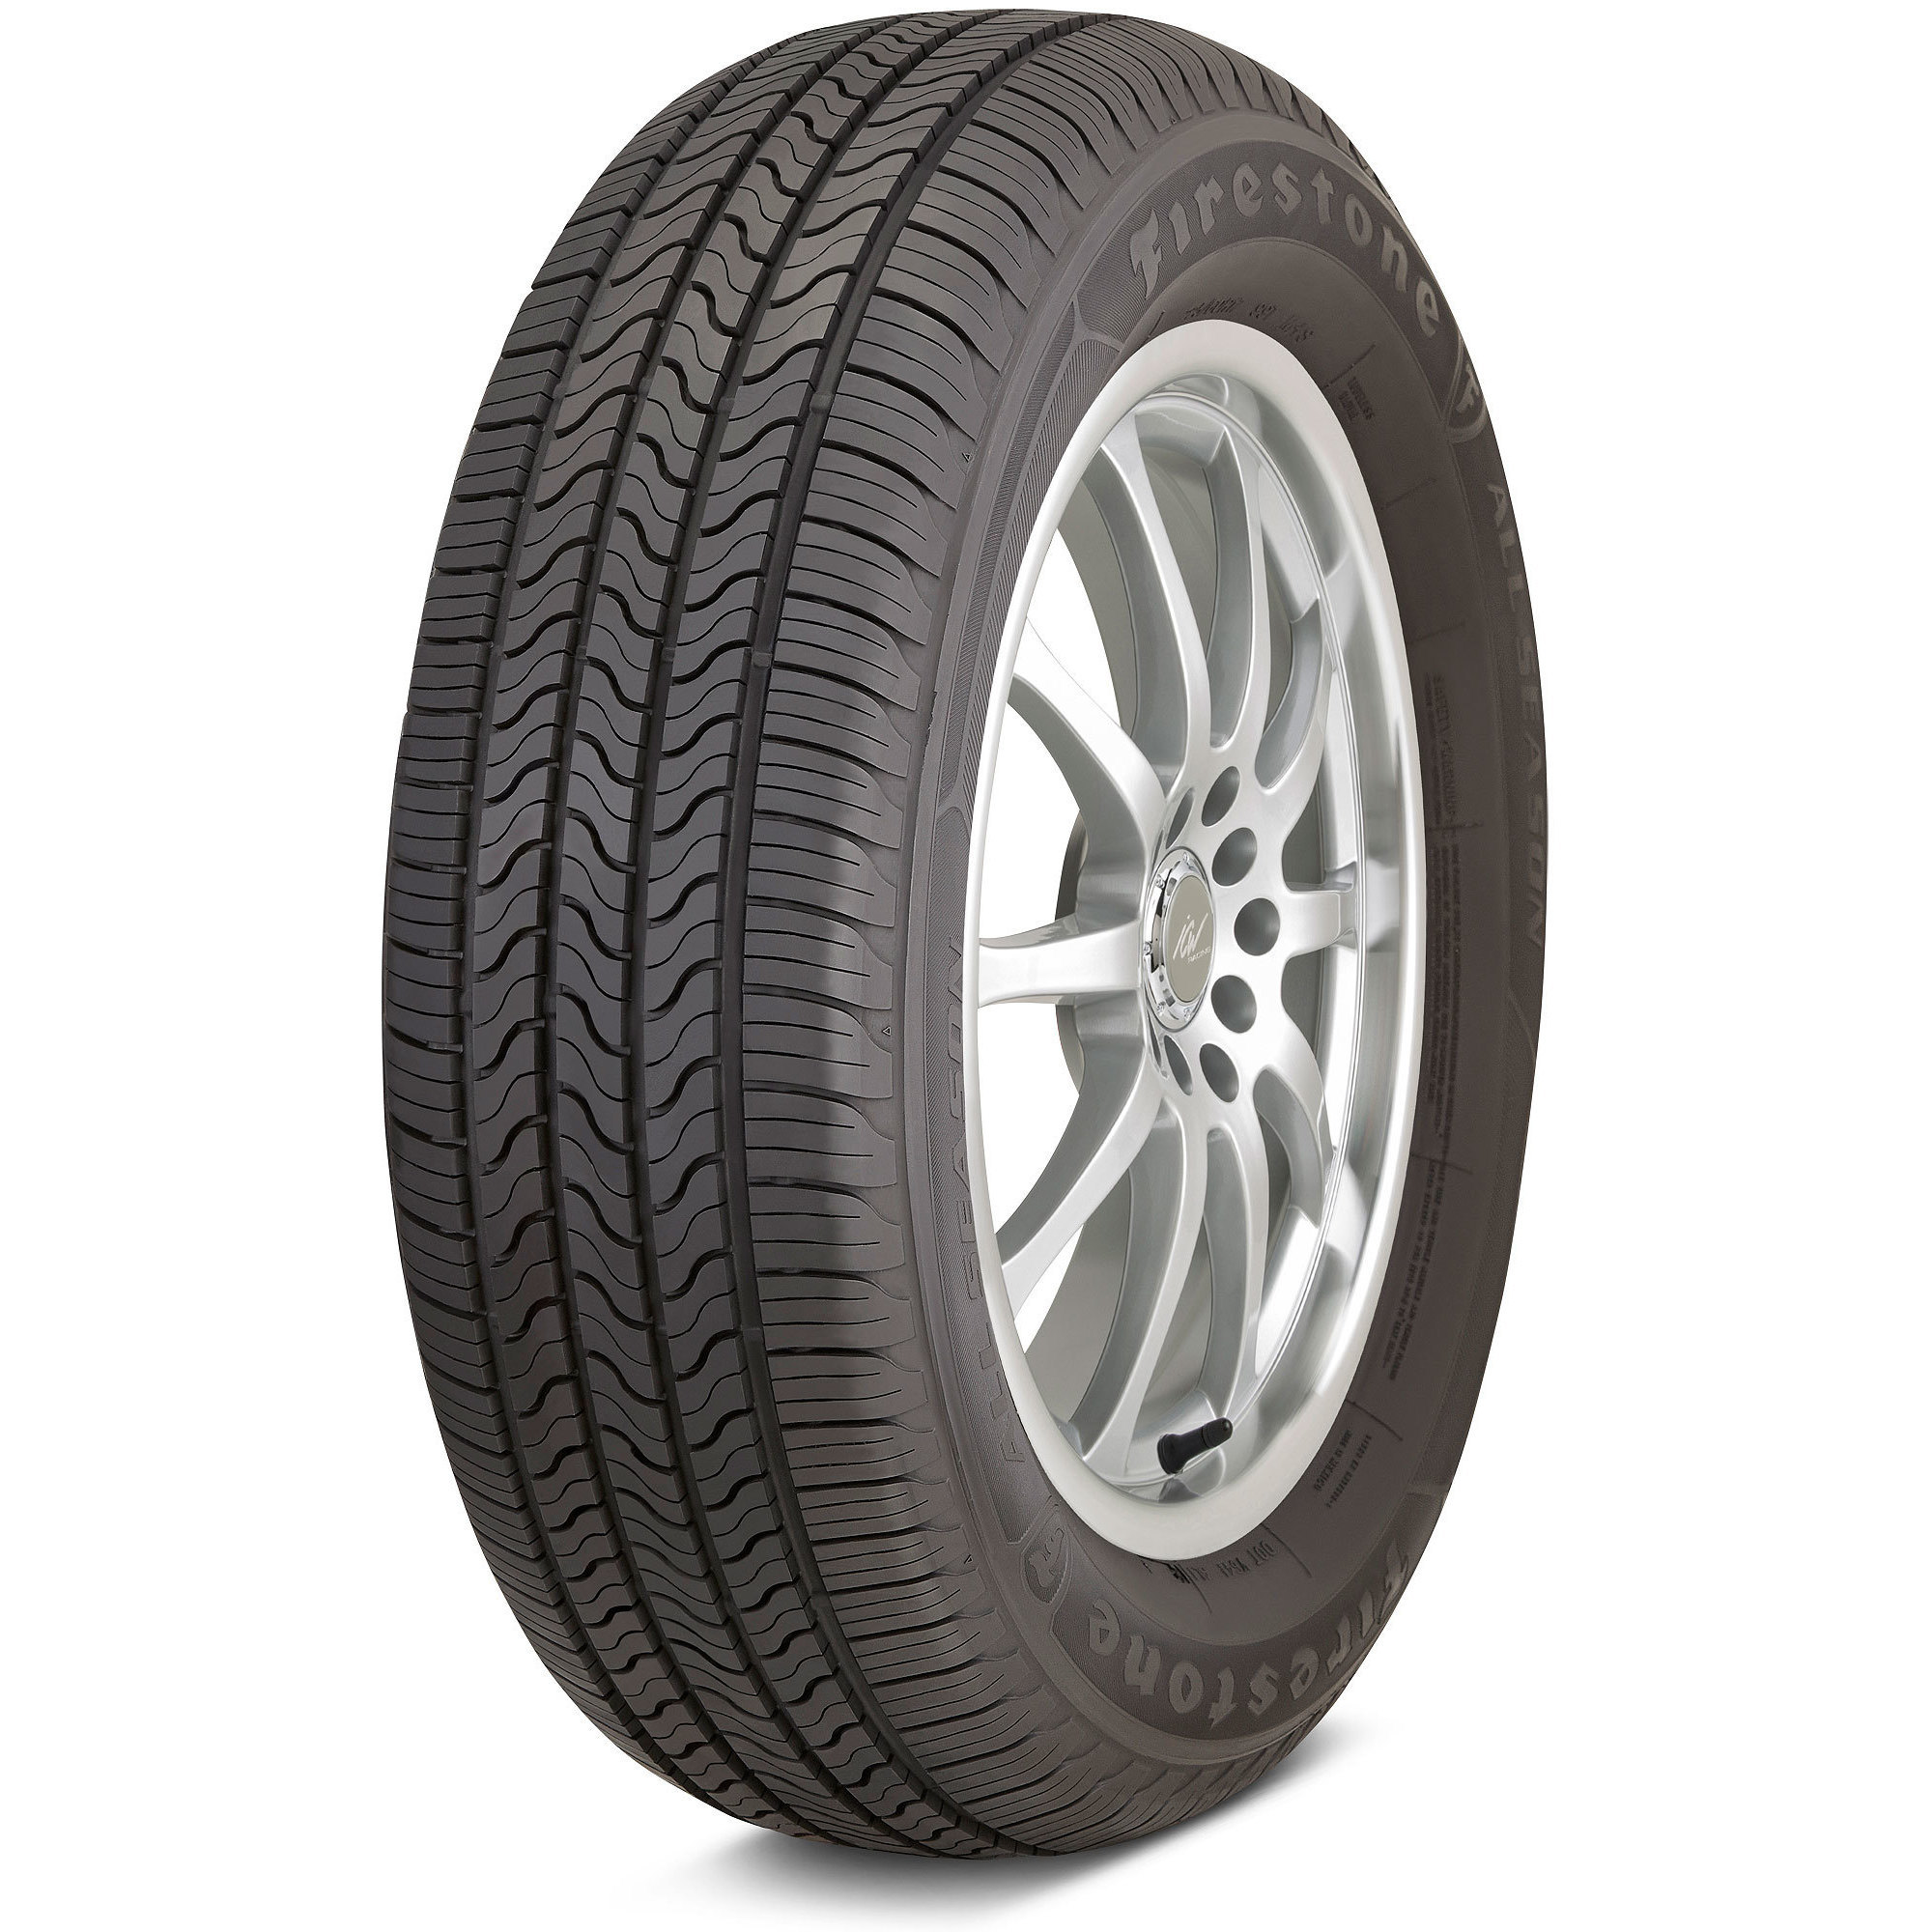 All Season Tire Reviews >> Firestone All Season Tire Rating Overview Videos Reviews